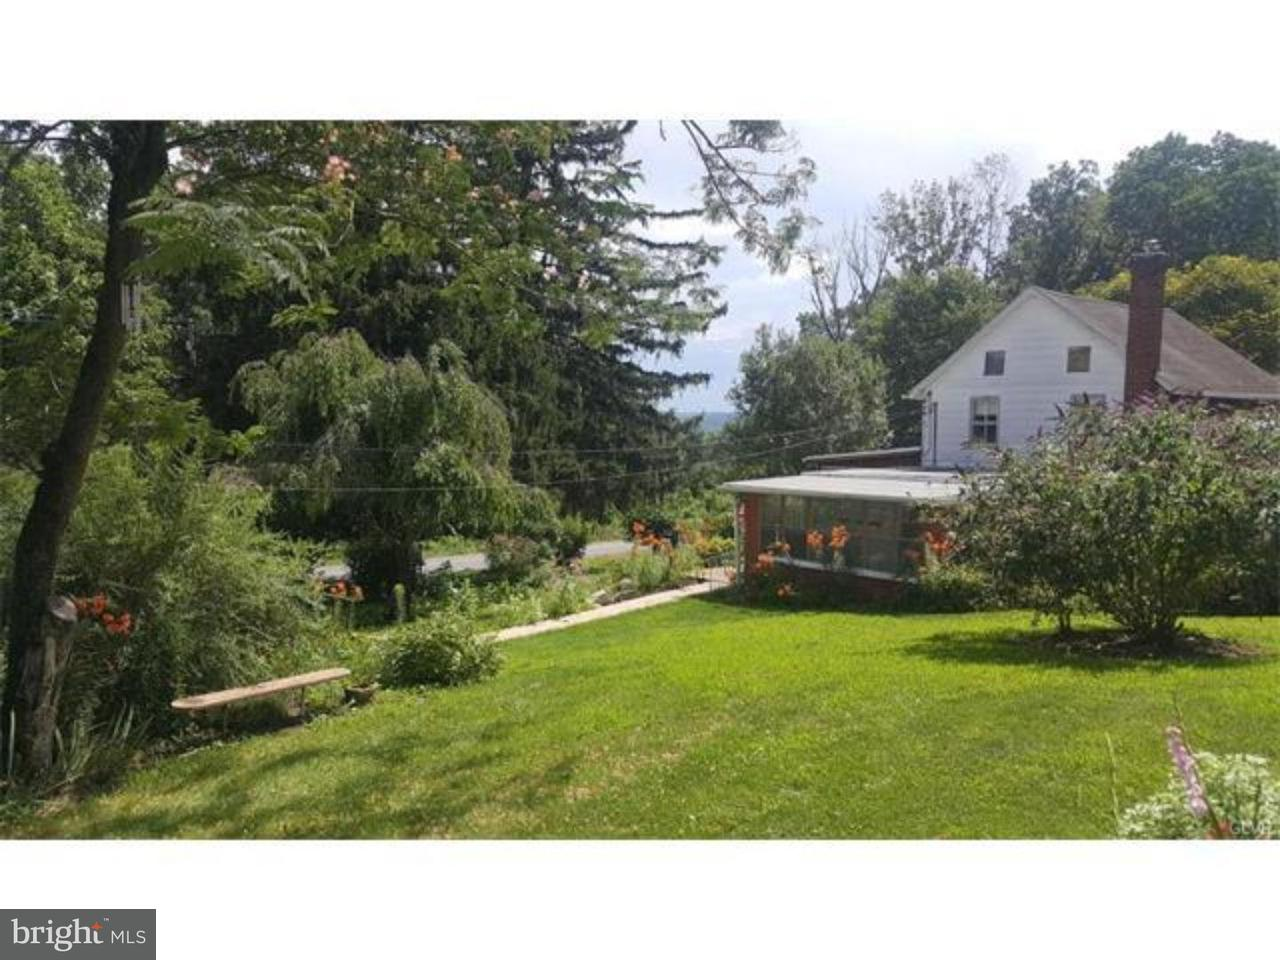 Single Family Home for Sale at 7428 CARLS HILL Road Zionsville, Pennsylvania 18092 United States